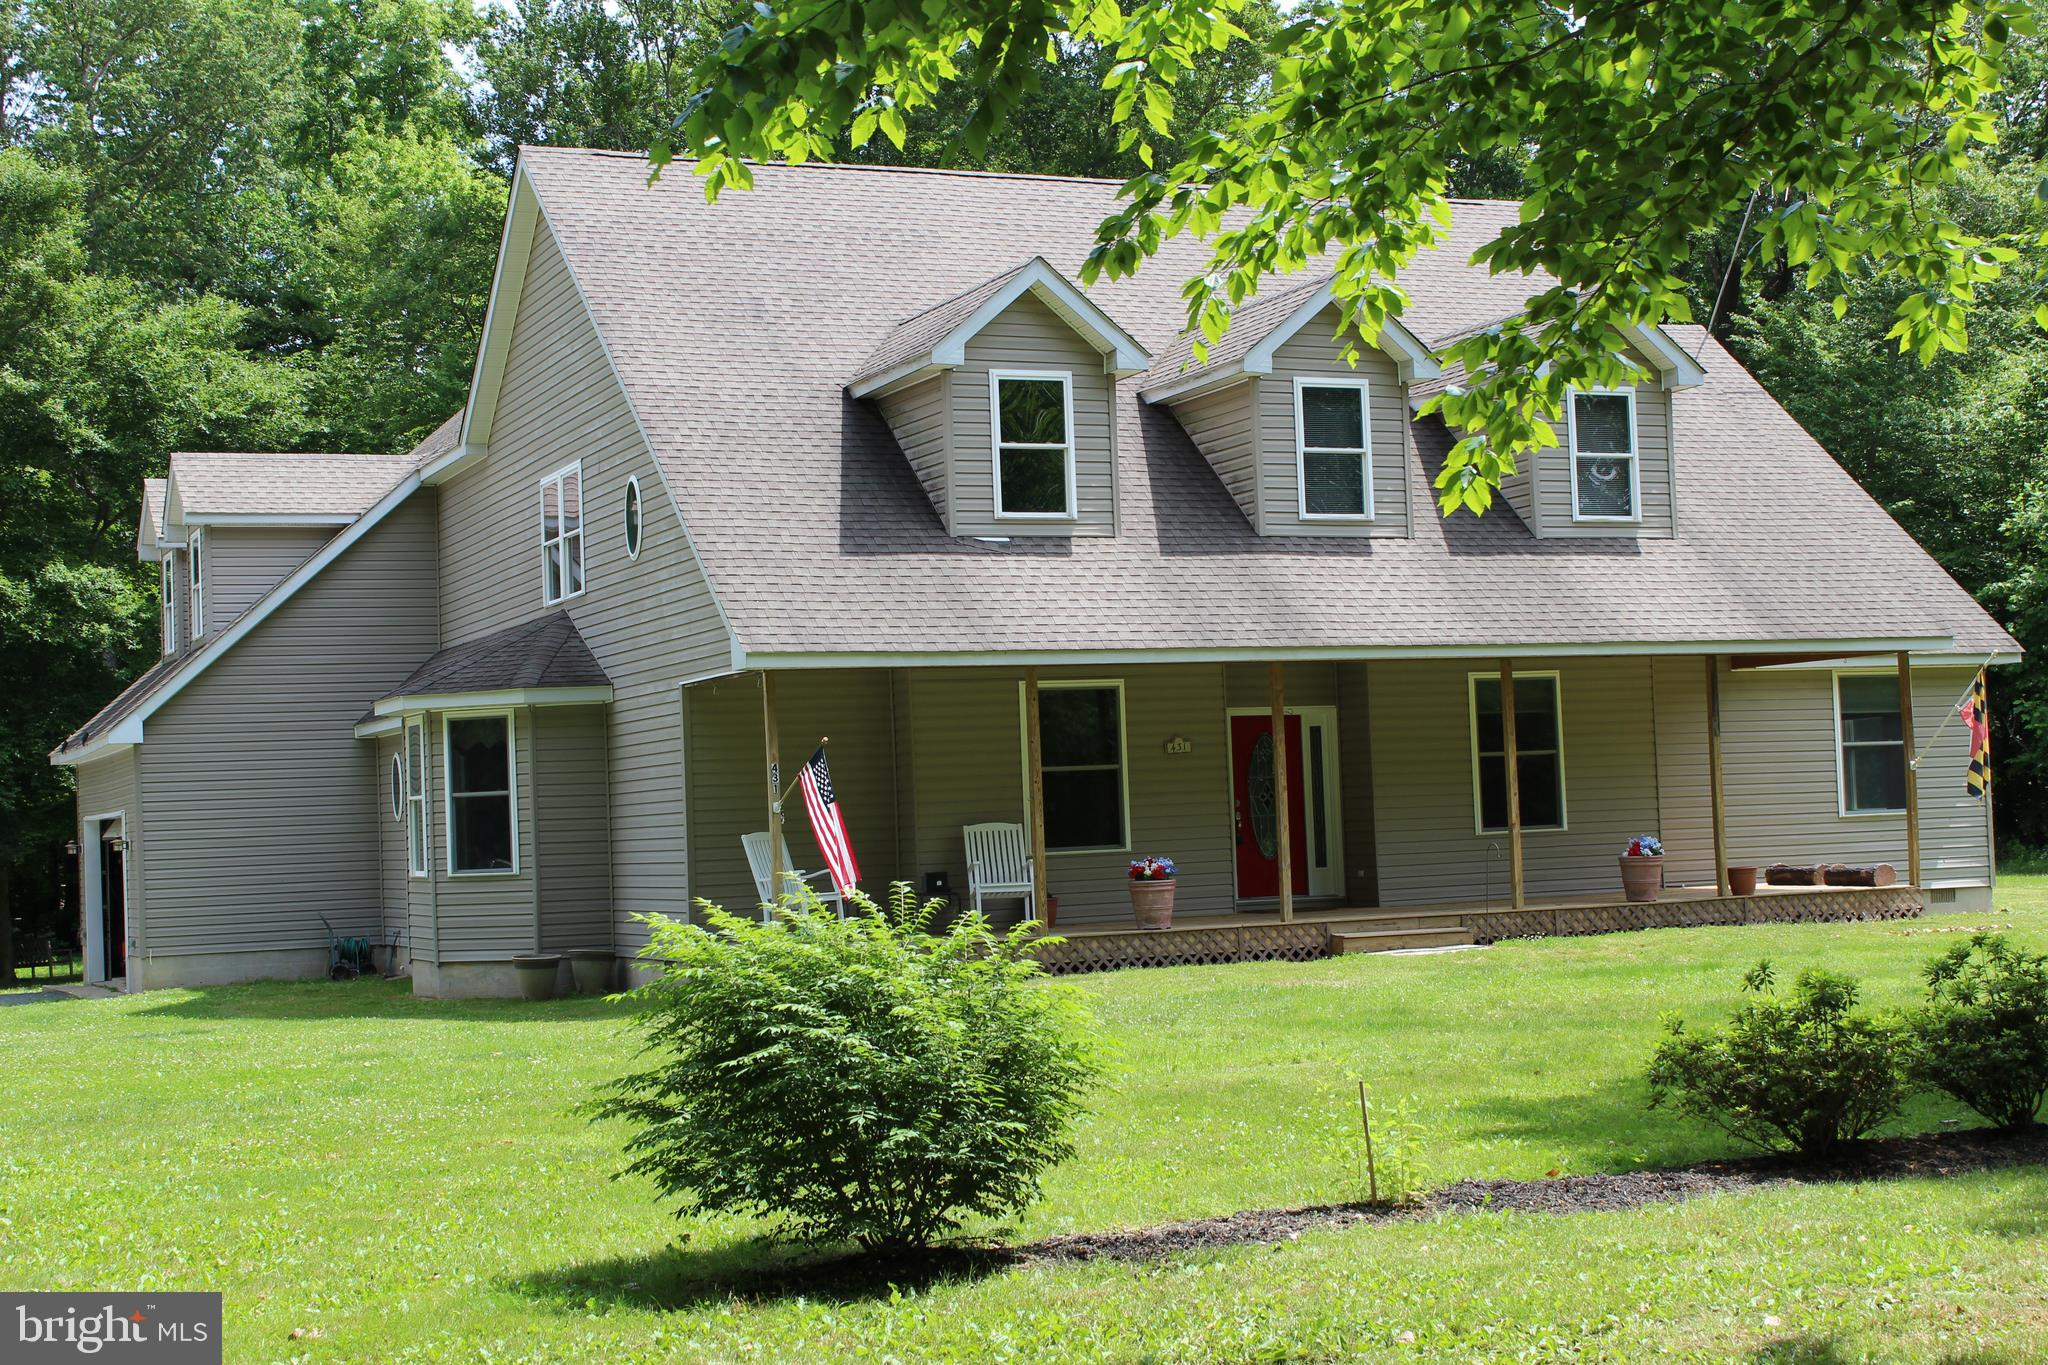 431 HALL ROAD, SUDLERSVILLE, MD 21668